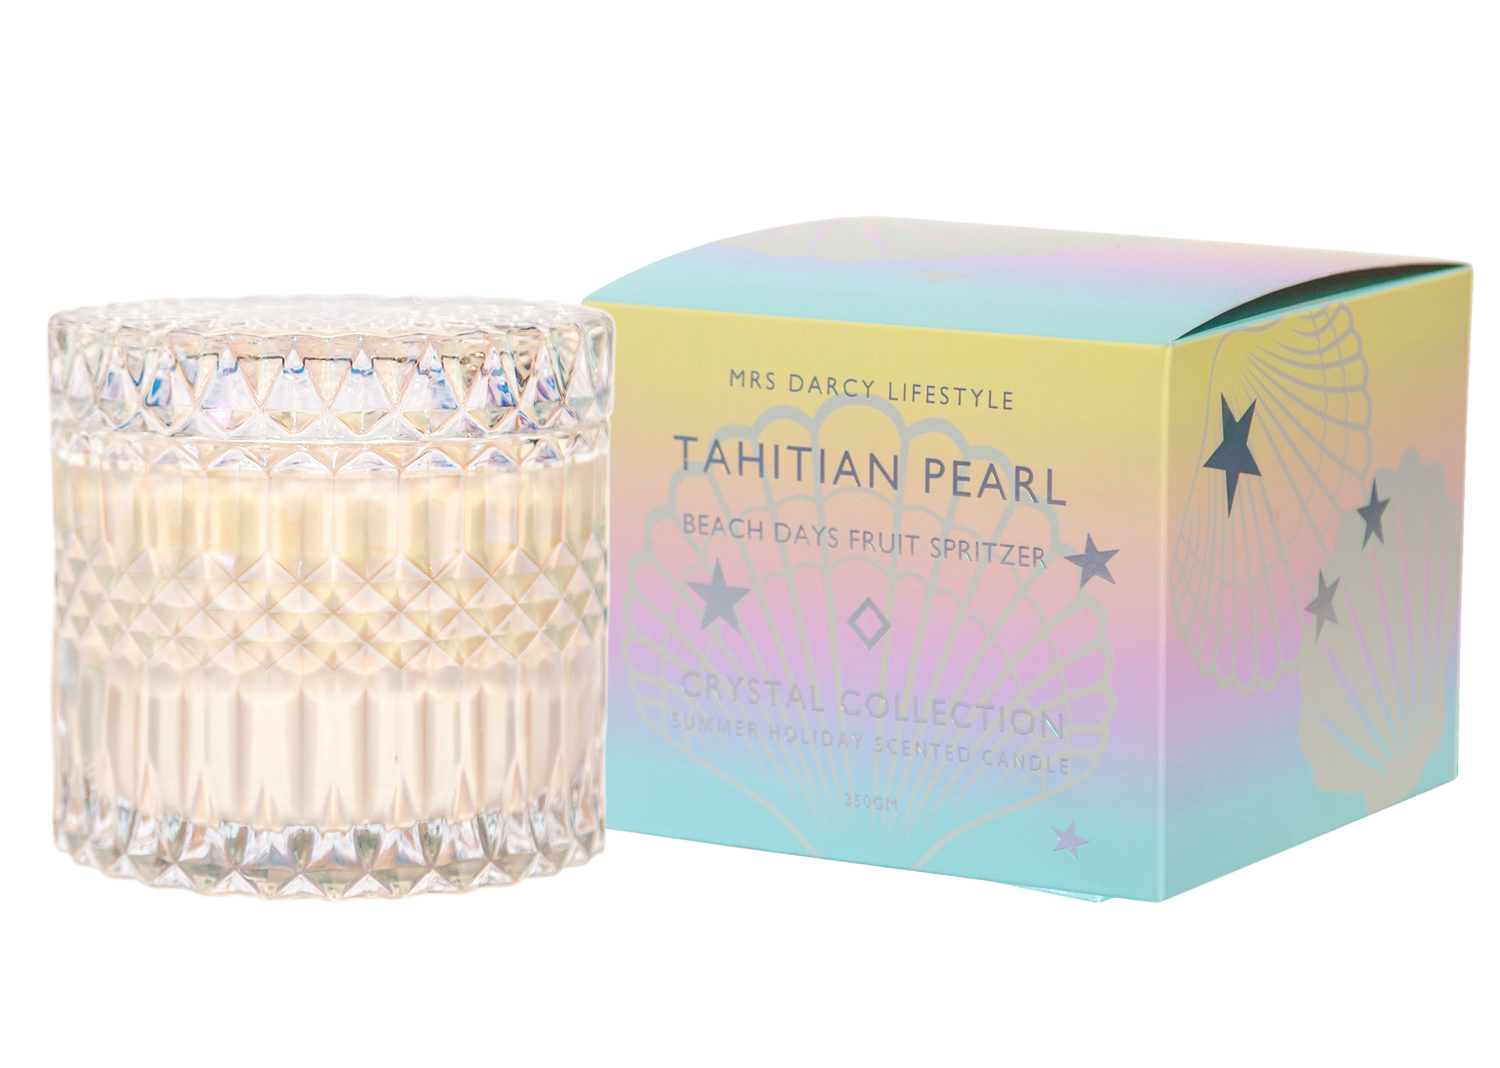 Mrs Darcy Scented Candle - Tahitian Pearl (Beach Days Fruit Spritzer)